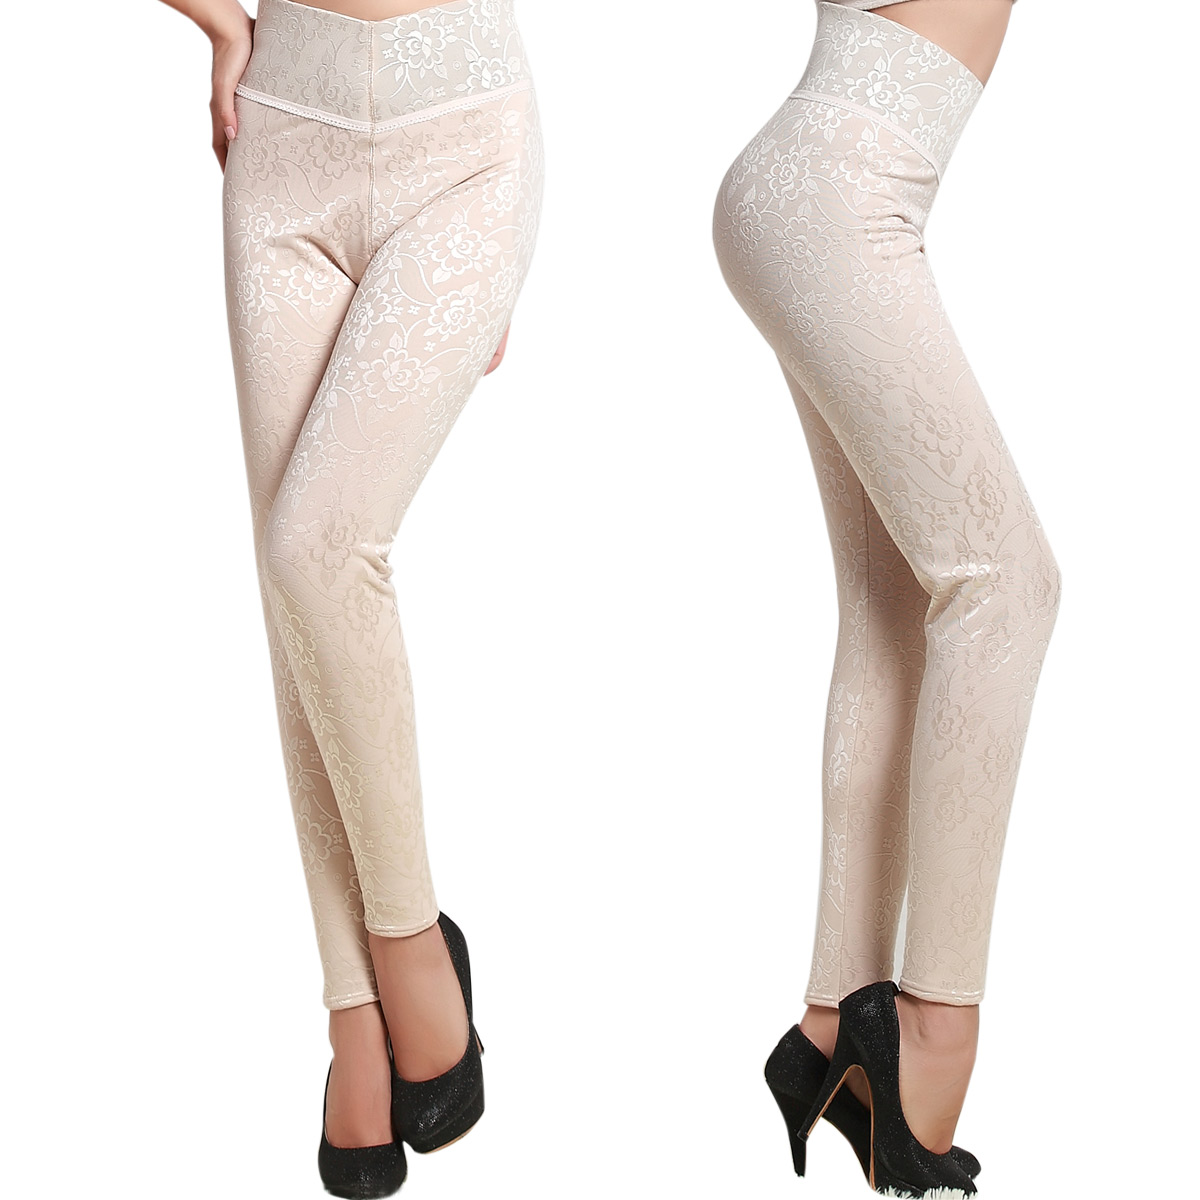 2012 autumn and winter high waist abdomen drawing butt-lifting magnetic therapy body shaping thermal legging bk113